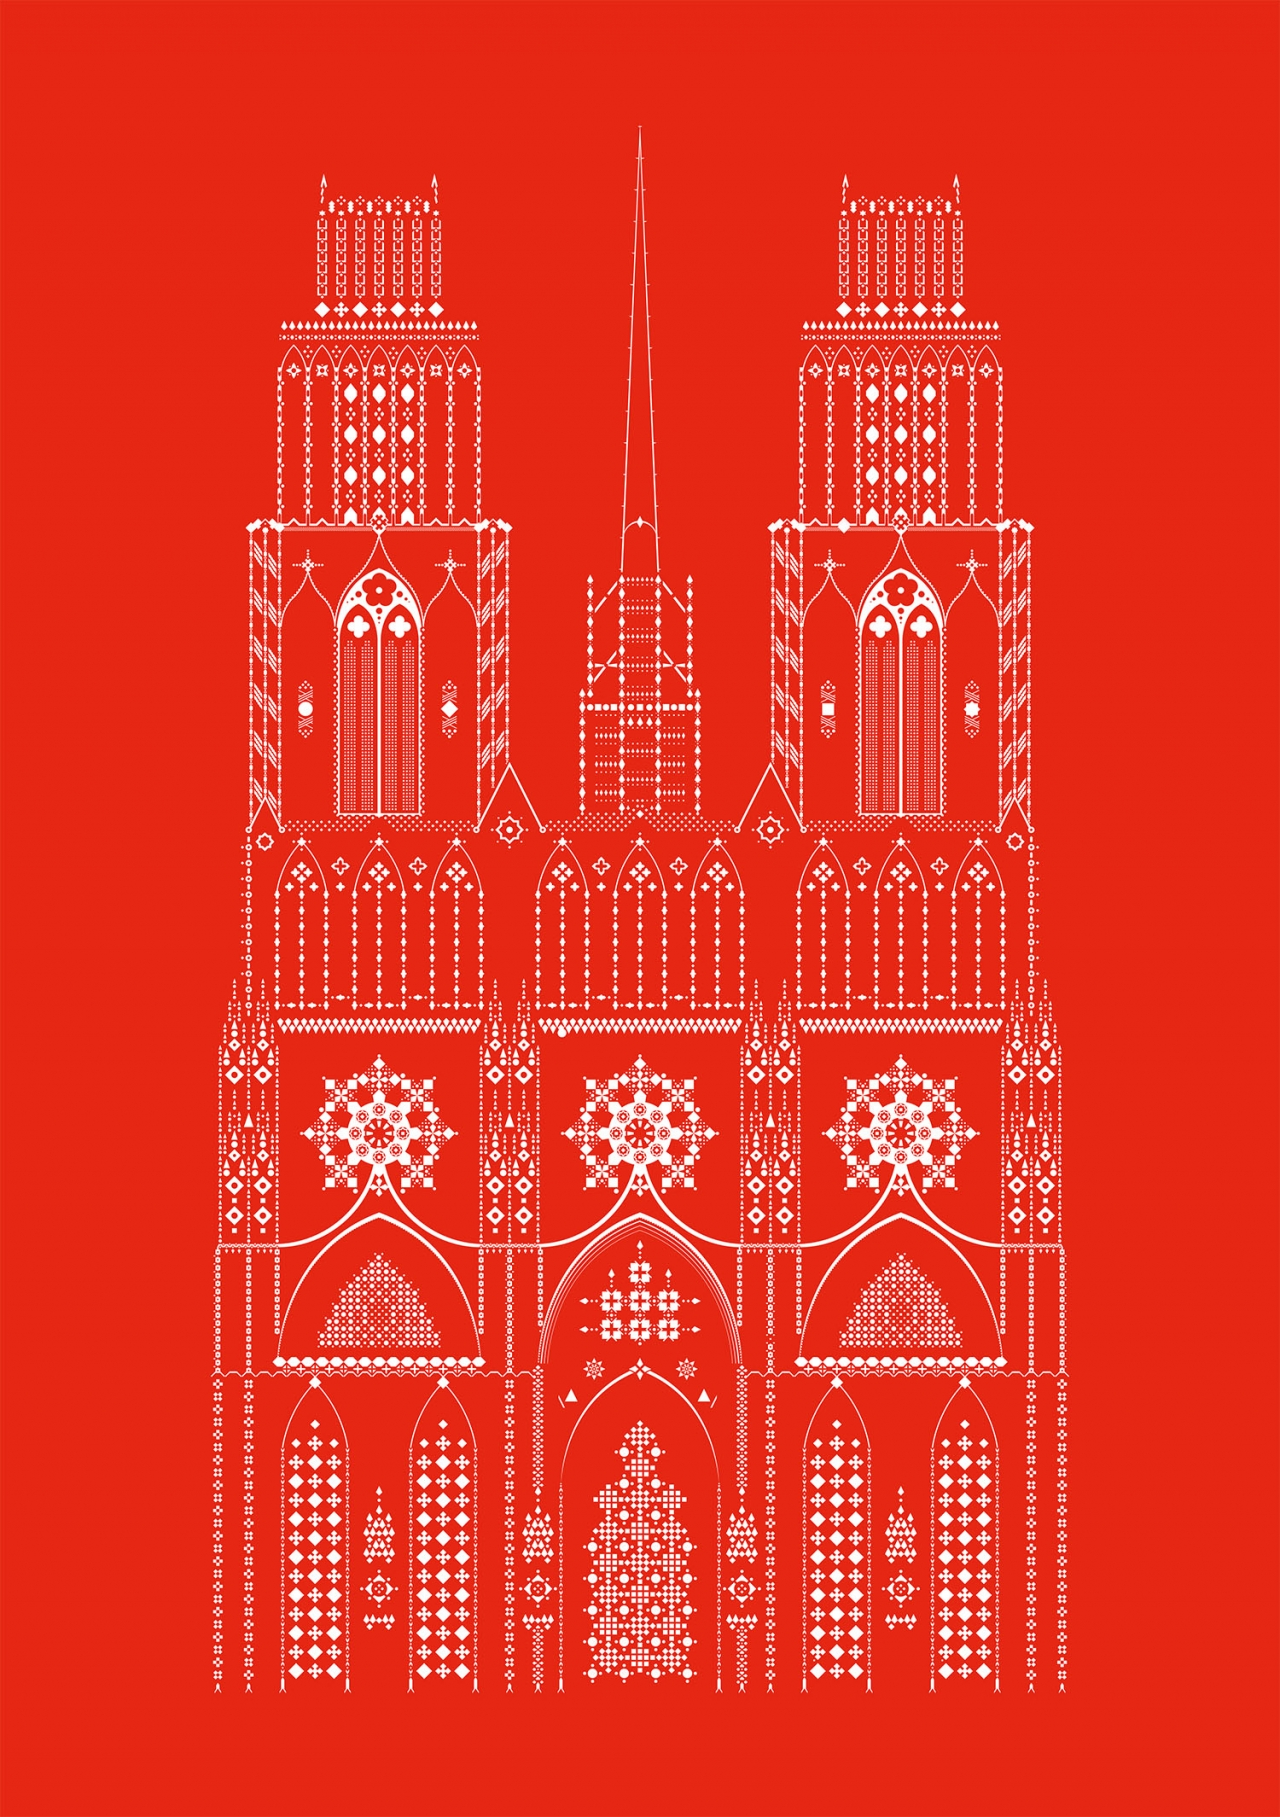 Romain Belotti - Graphiste à Lyon Cathédrale       Illustration